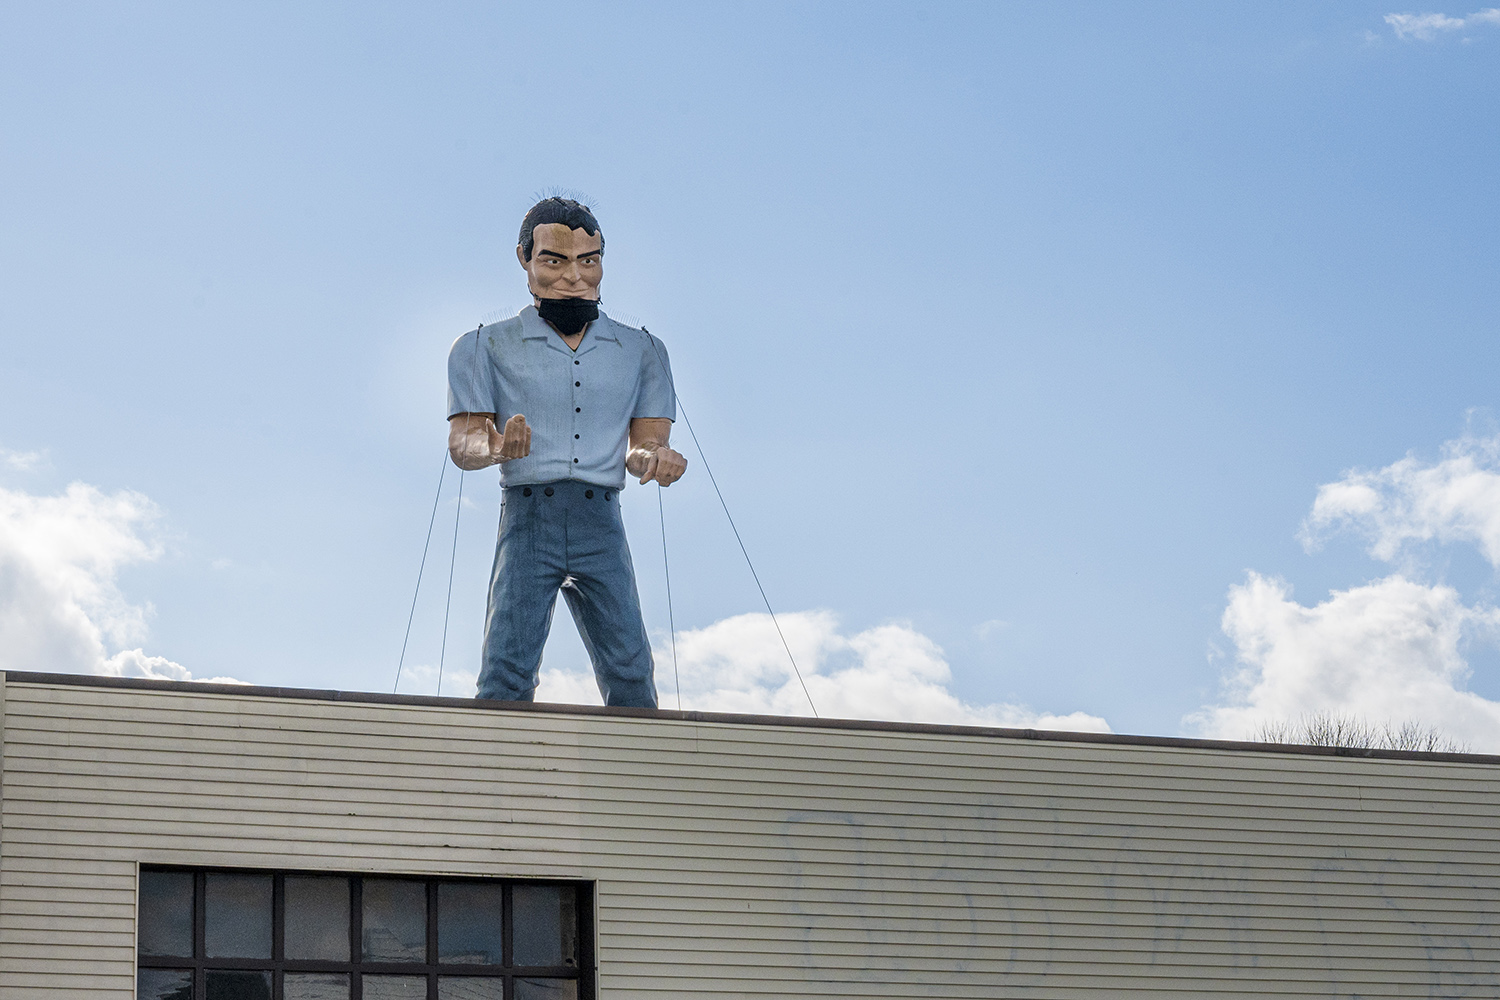 The Stevedoring Muffler Man is one of four in Washington, though the remaining structures are either privately owned or only make special appearances during annual events. (Rachael Jones / Seattle Refined)